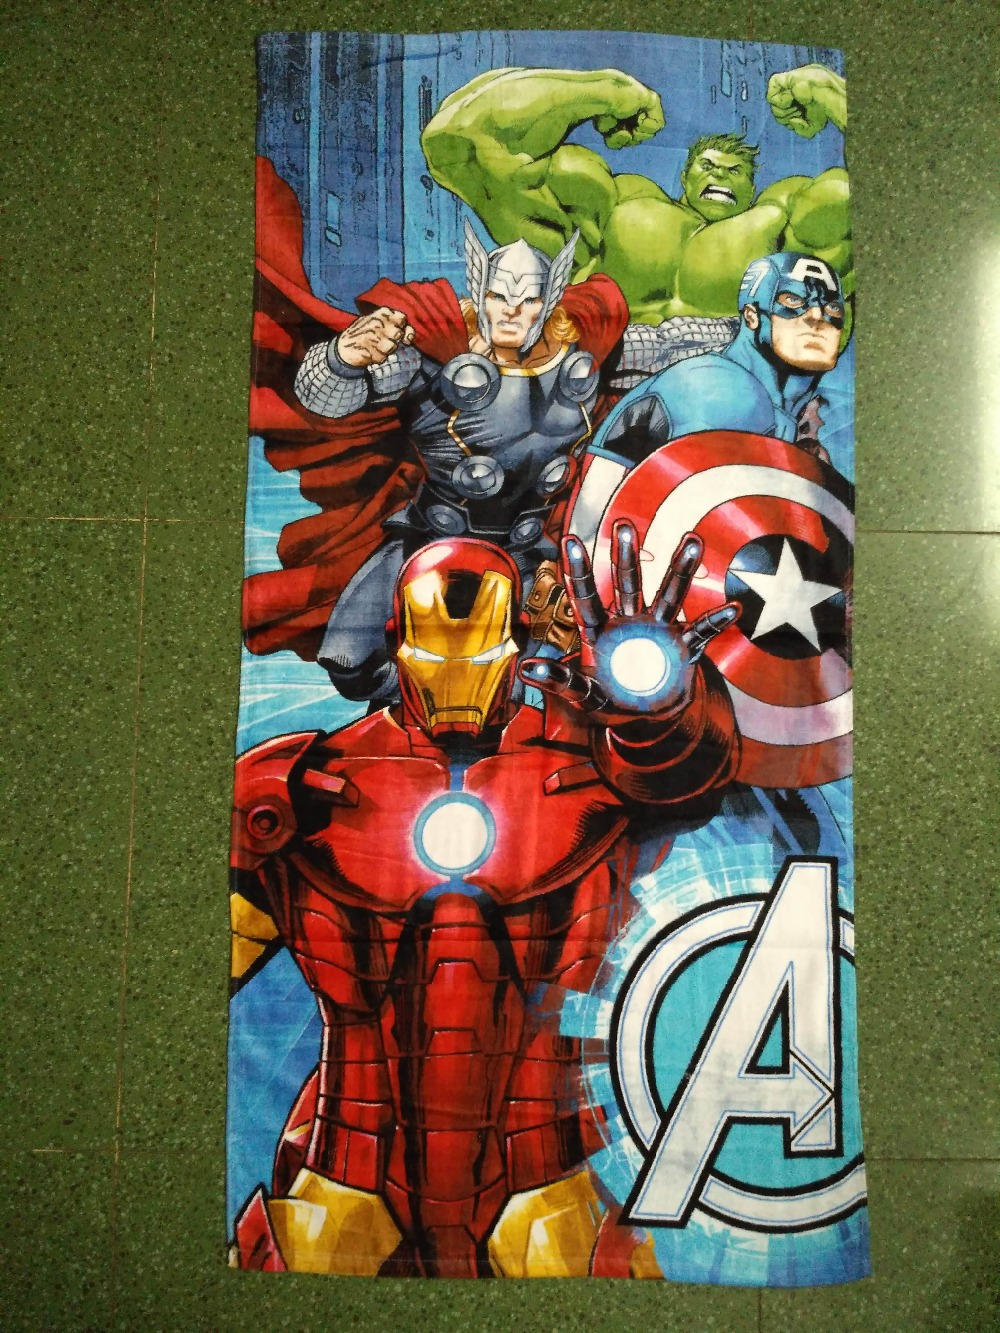 70*140cm Avenged Sevenfold Nightmare Beach Towel Bamboo Fiber Travel Fabric Quick Drying Outdoors Sports Swimming Gym Towels Moderate Price Bbq Aprons